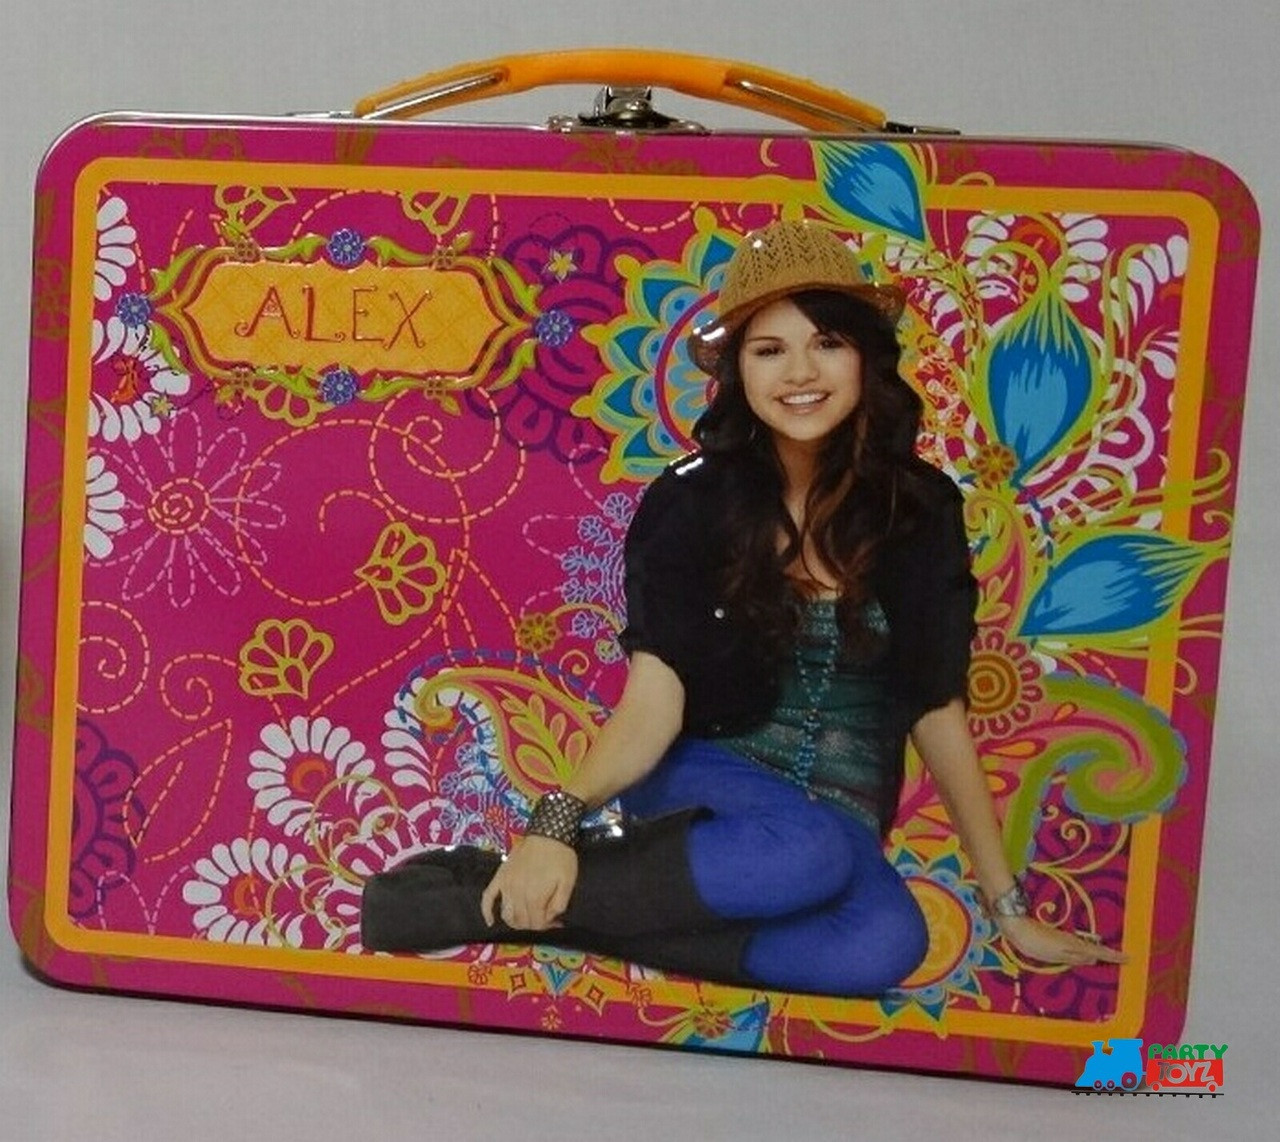 Wizards of Waverly Place Square Carry All Tin Lunchbox Lunch Box - Pink